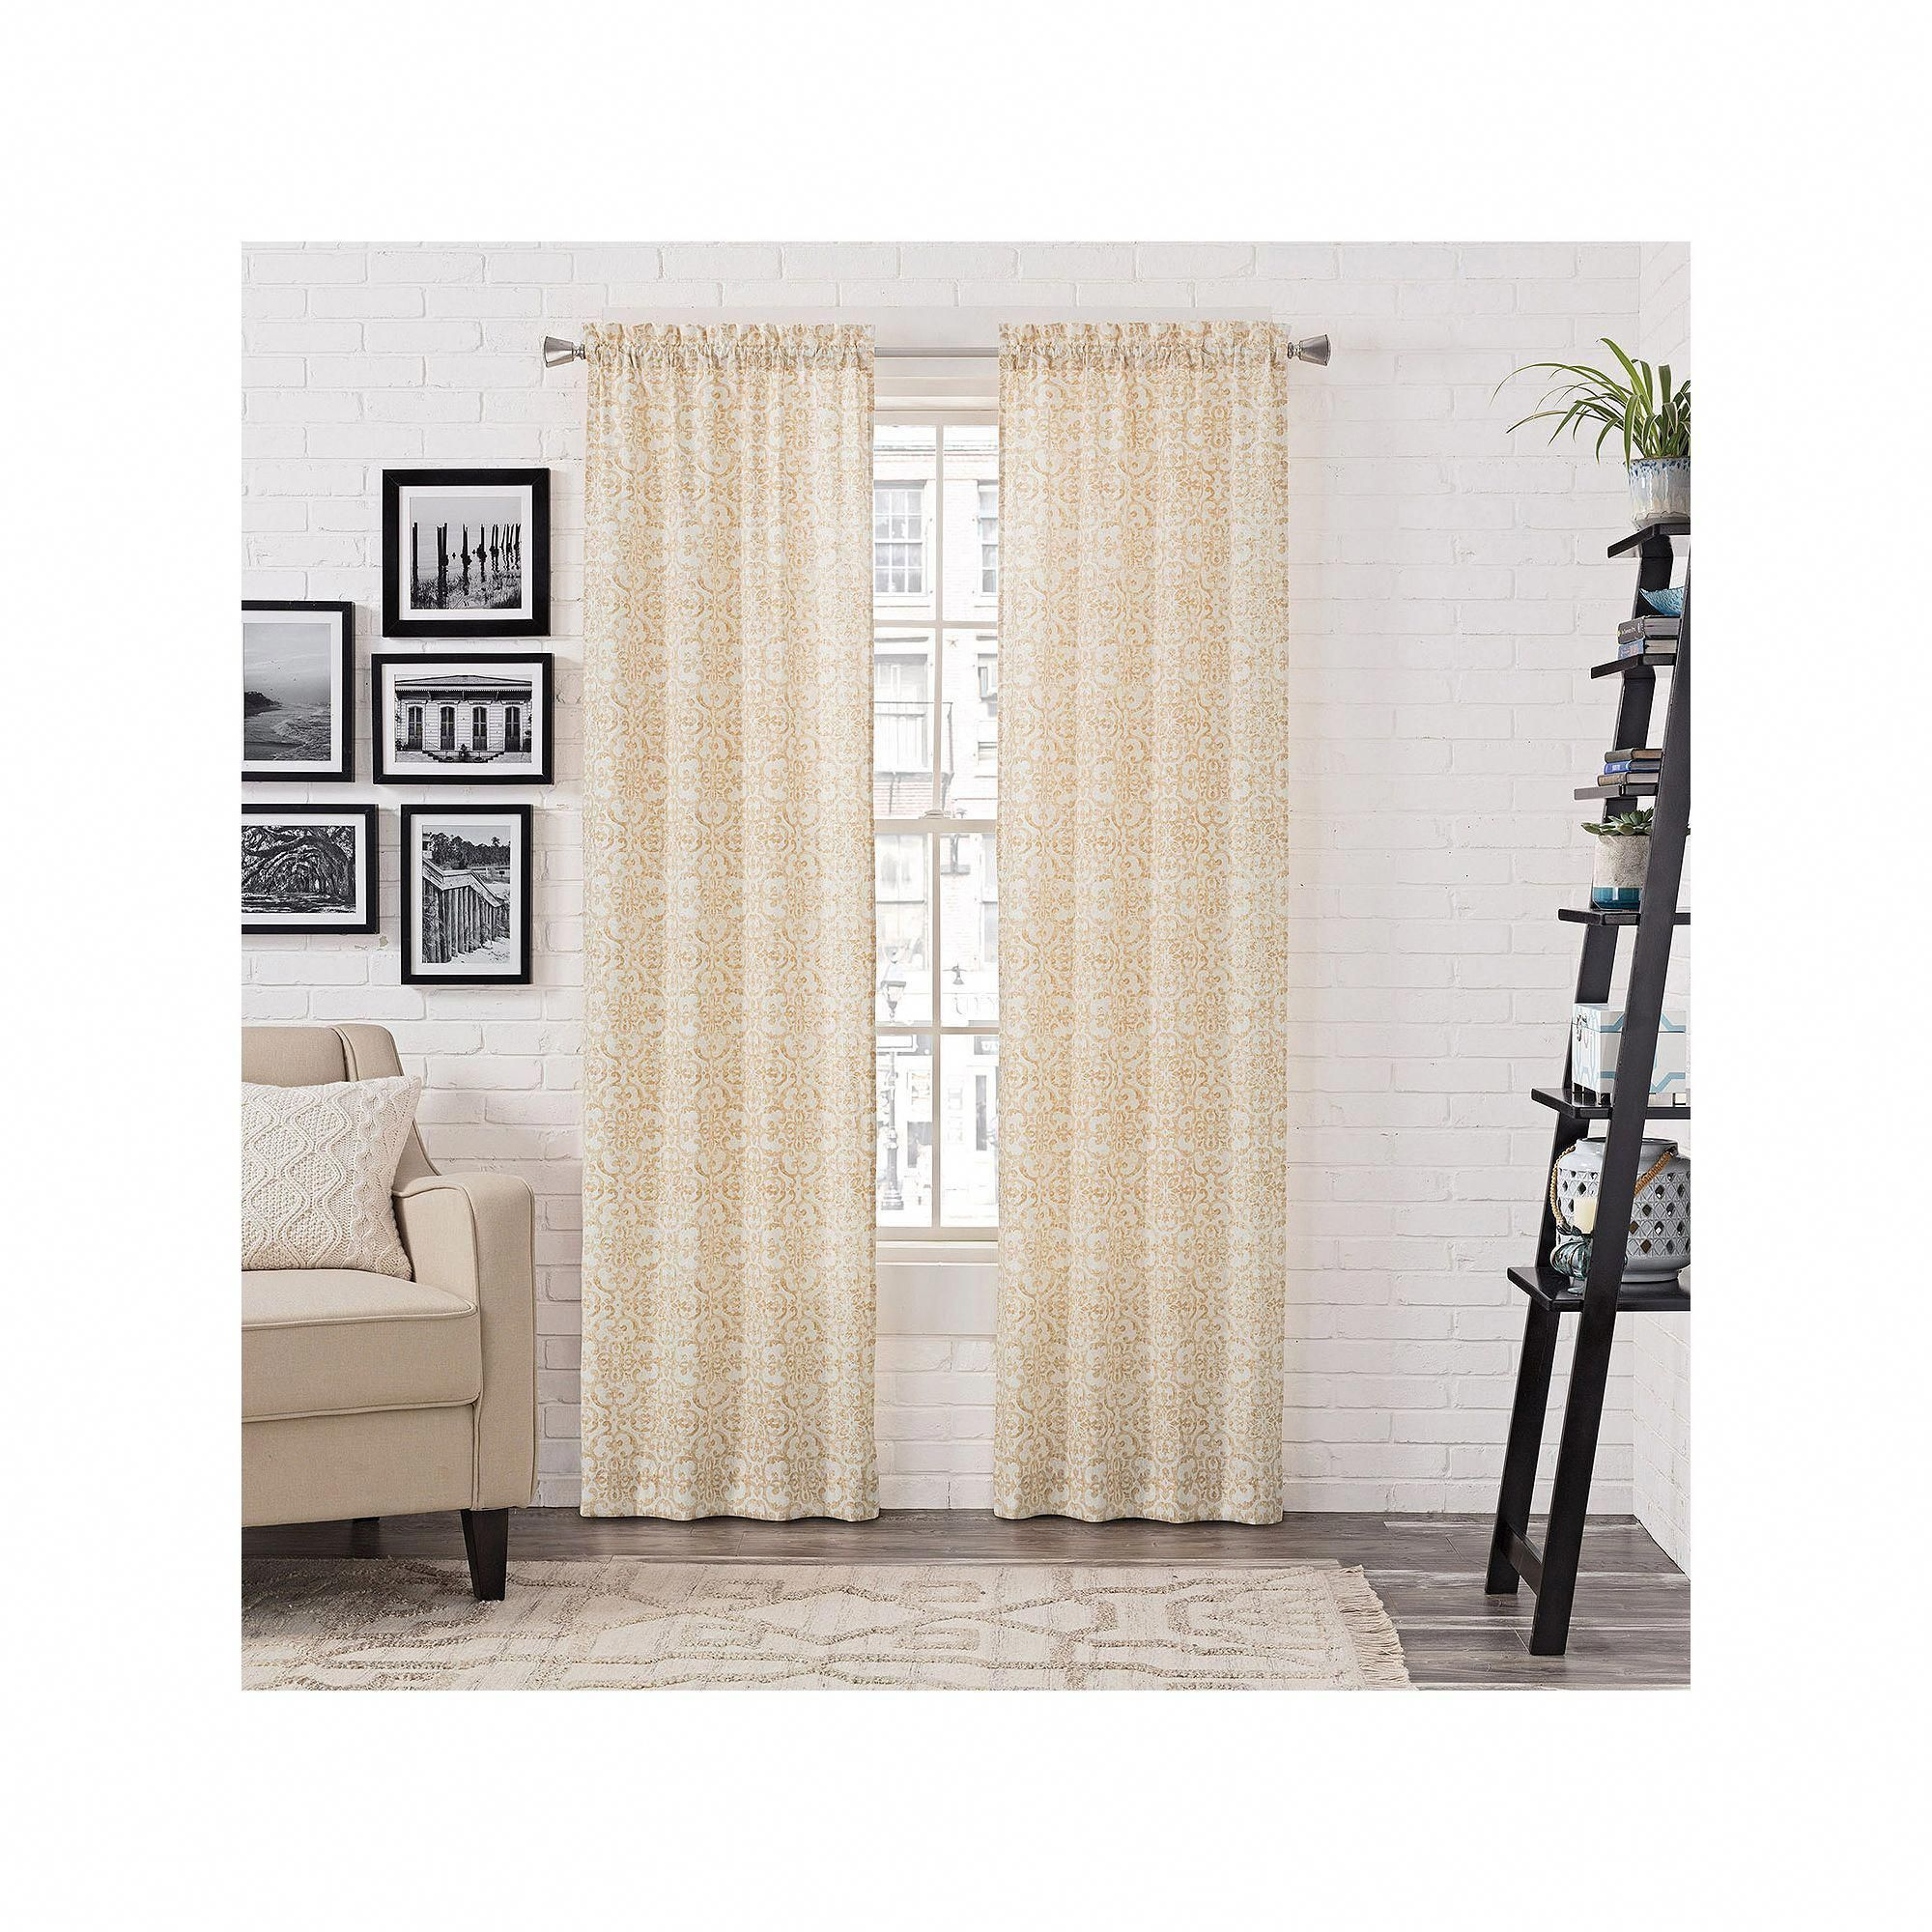 Curtains Can Decorate Either Your Window Or Your View Simple